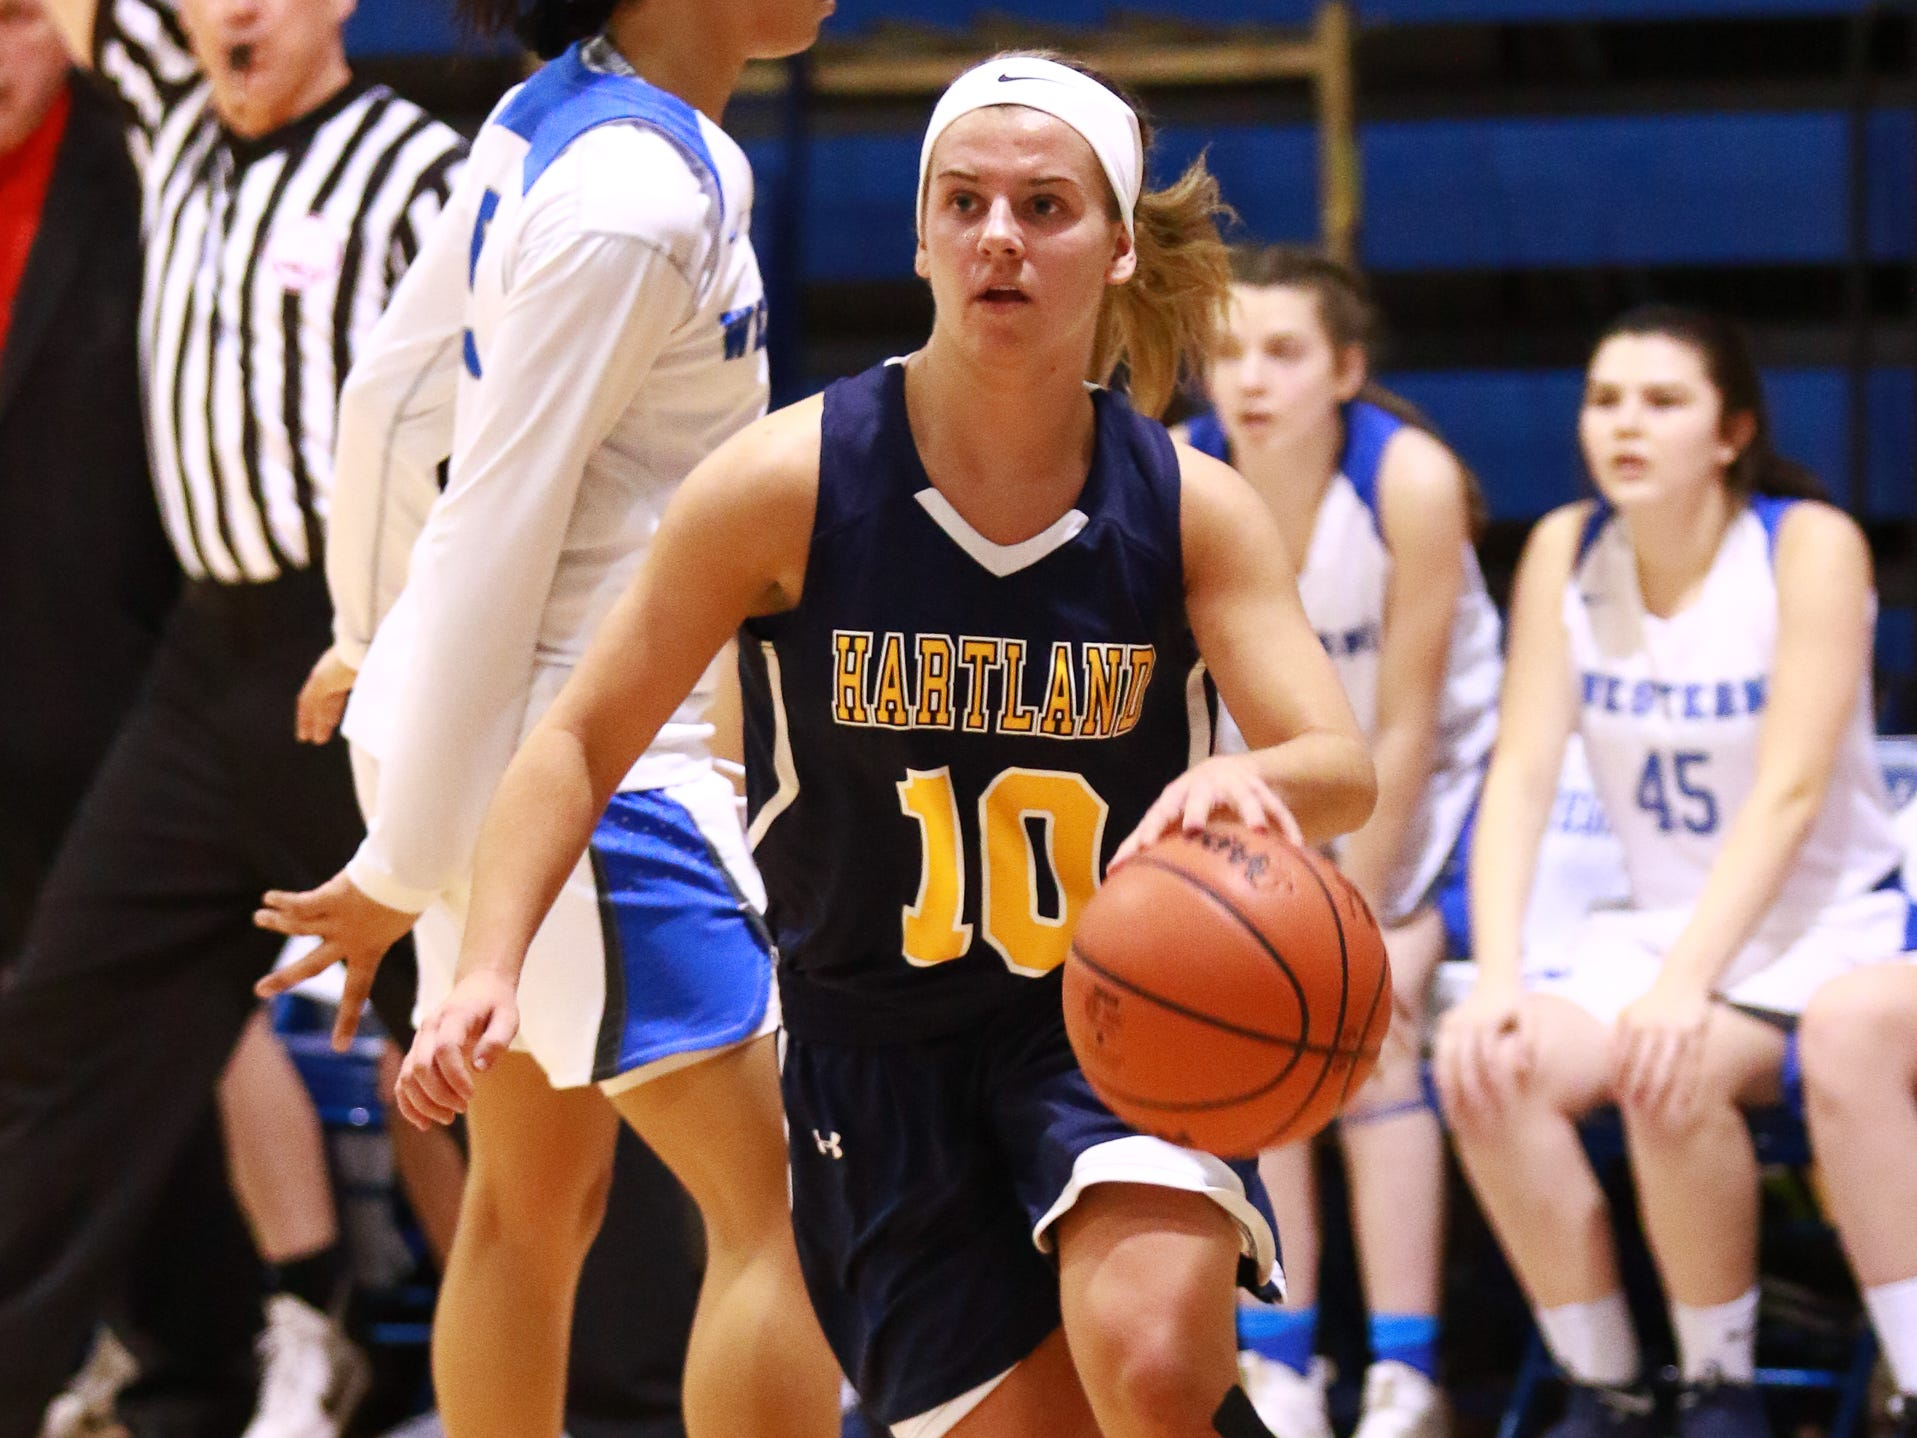 Hartland's Nikki Dompierre, who scored a career-high 26 points, drives the baseline in a 50-46 victory over Walled Lake Western in a regional championship basketball game at Lakeland on Wednesday, March 13, 2019.